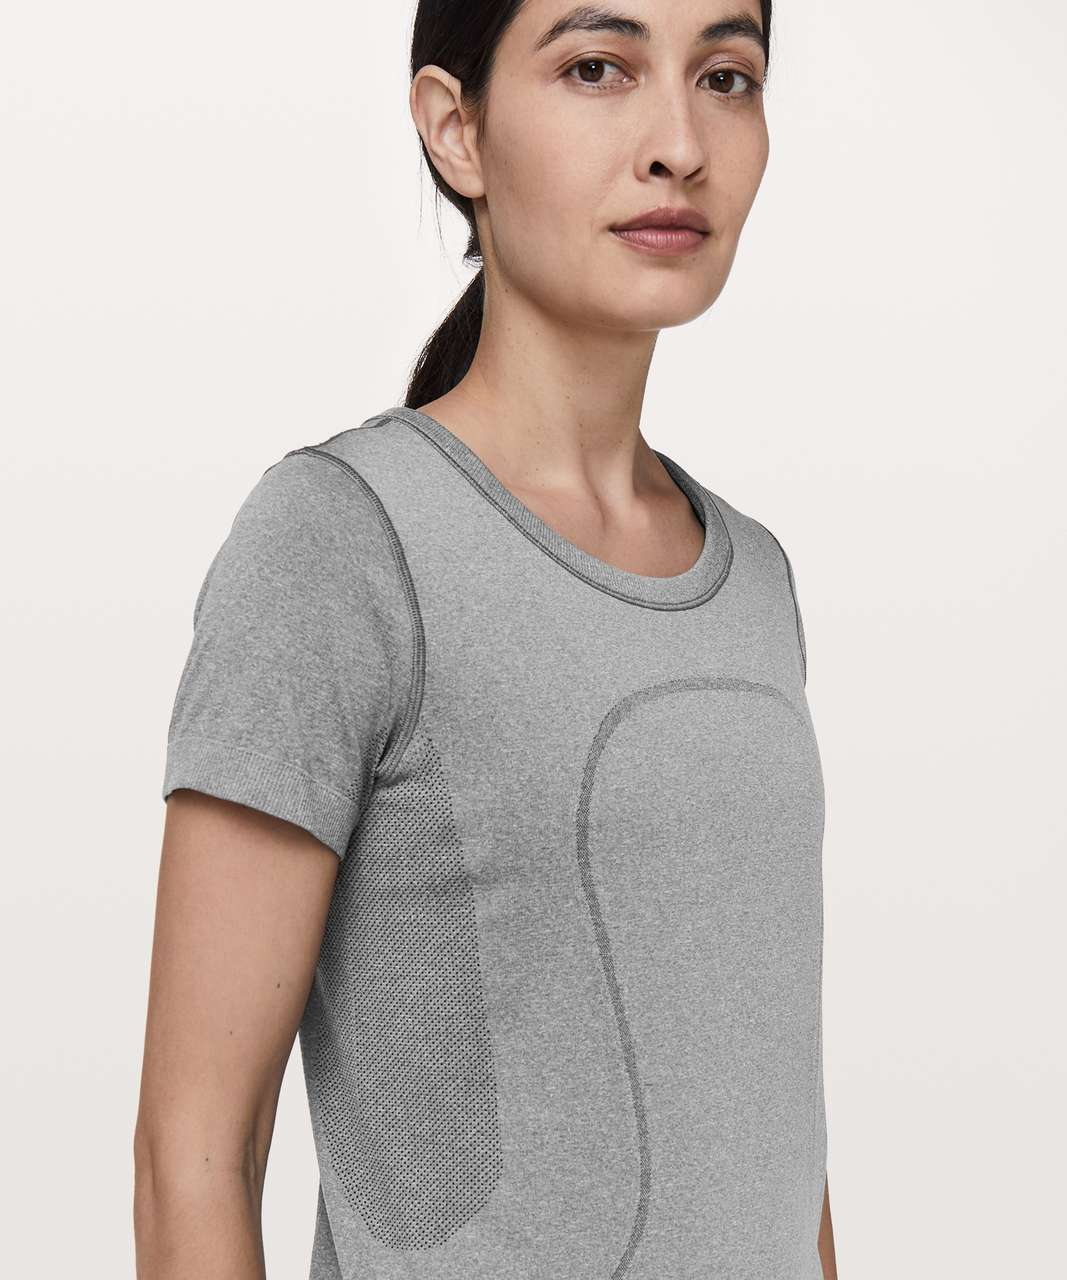 Lululemon Swiftly Tech Short Sleeve (Breeze) *Relaxed Fit - Slate / White (First Release)